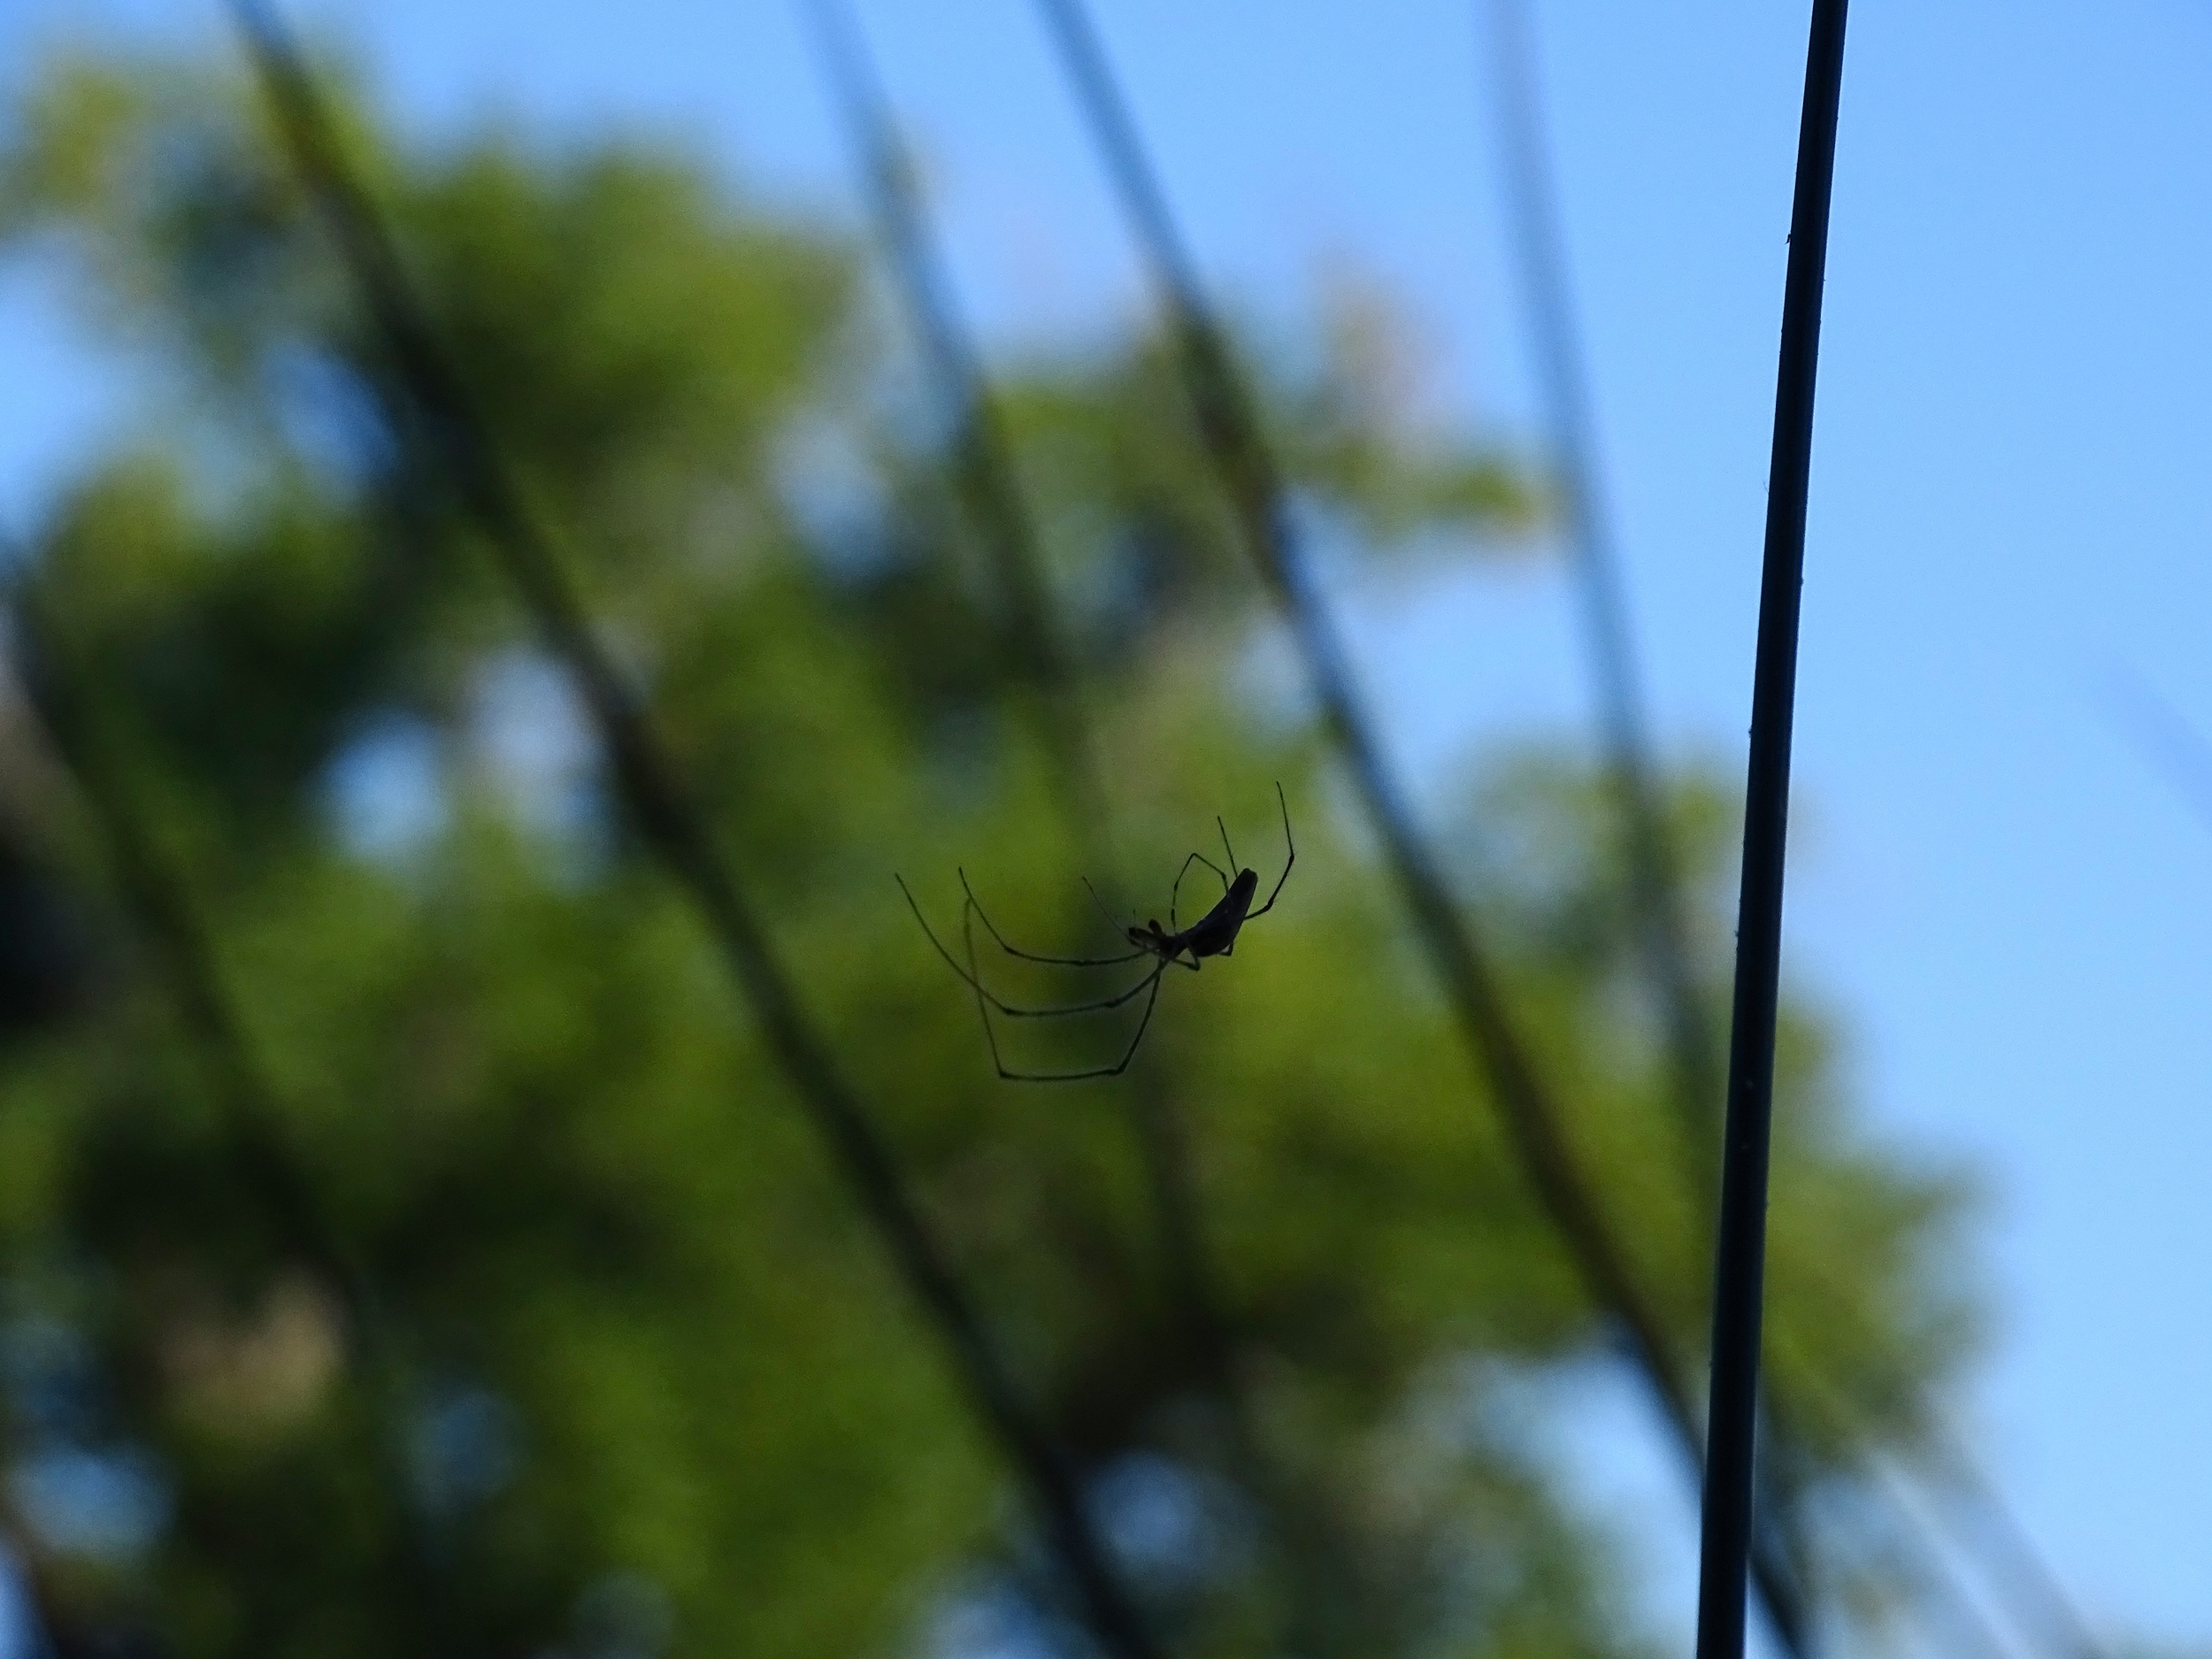 We watched this spider for a while.